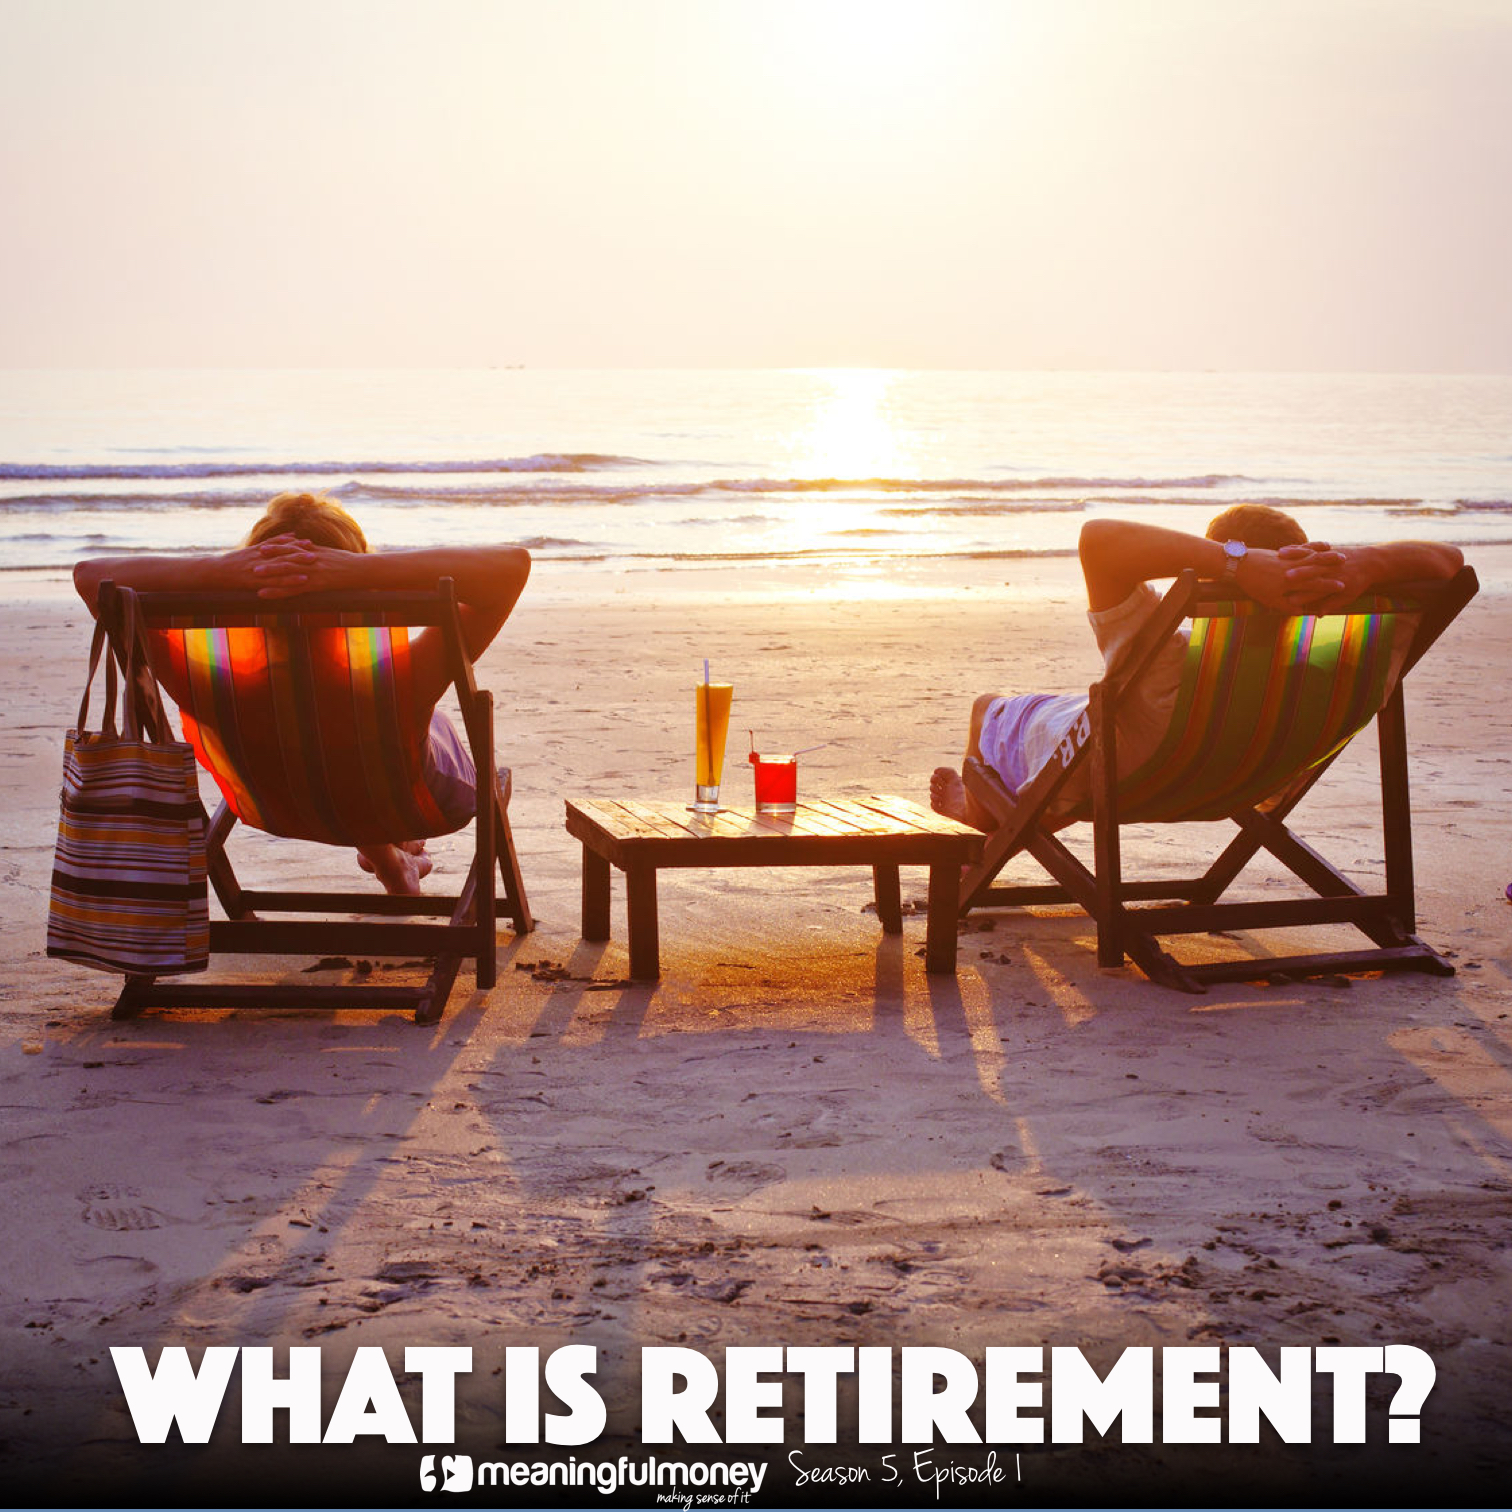 S5E1: What Is Retirement?